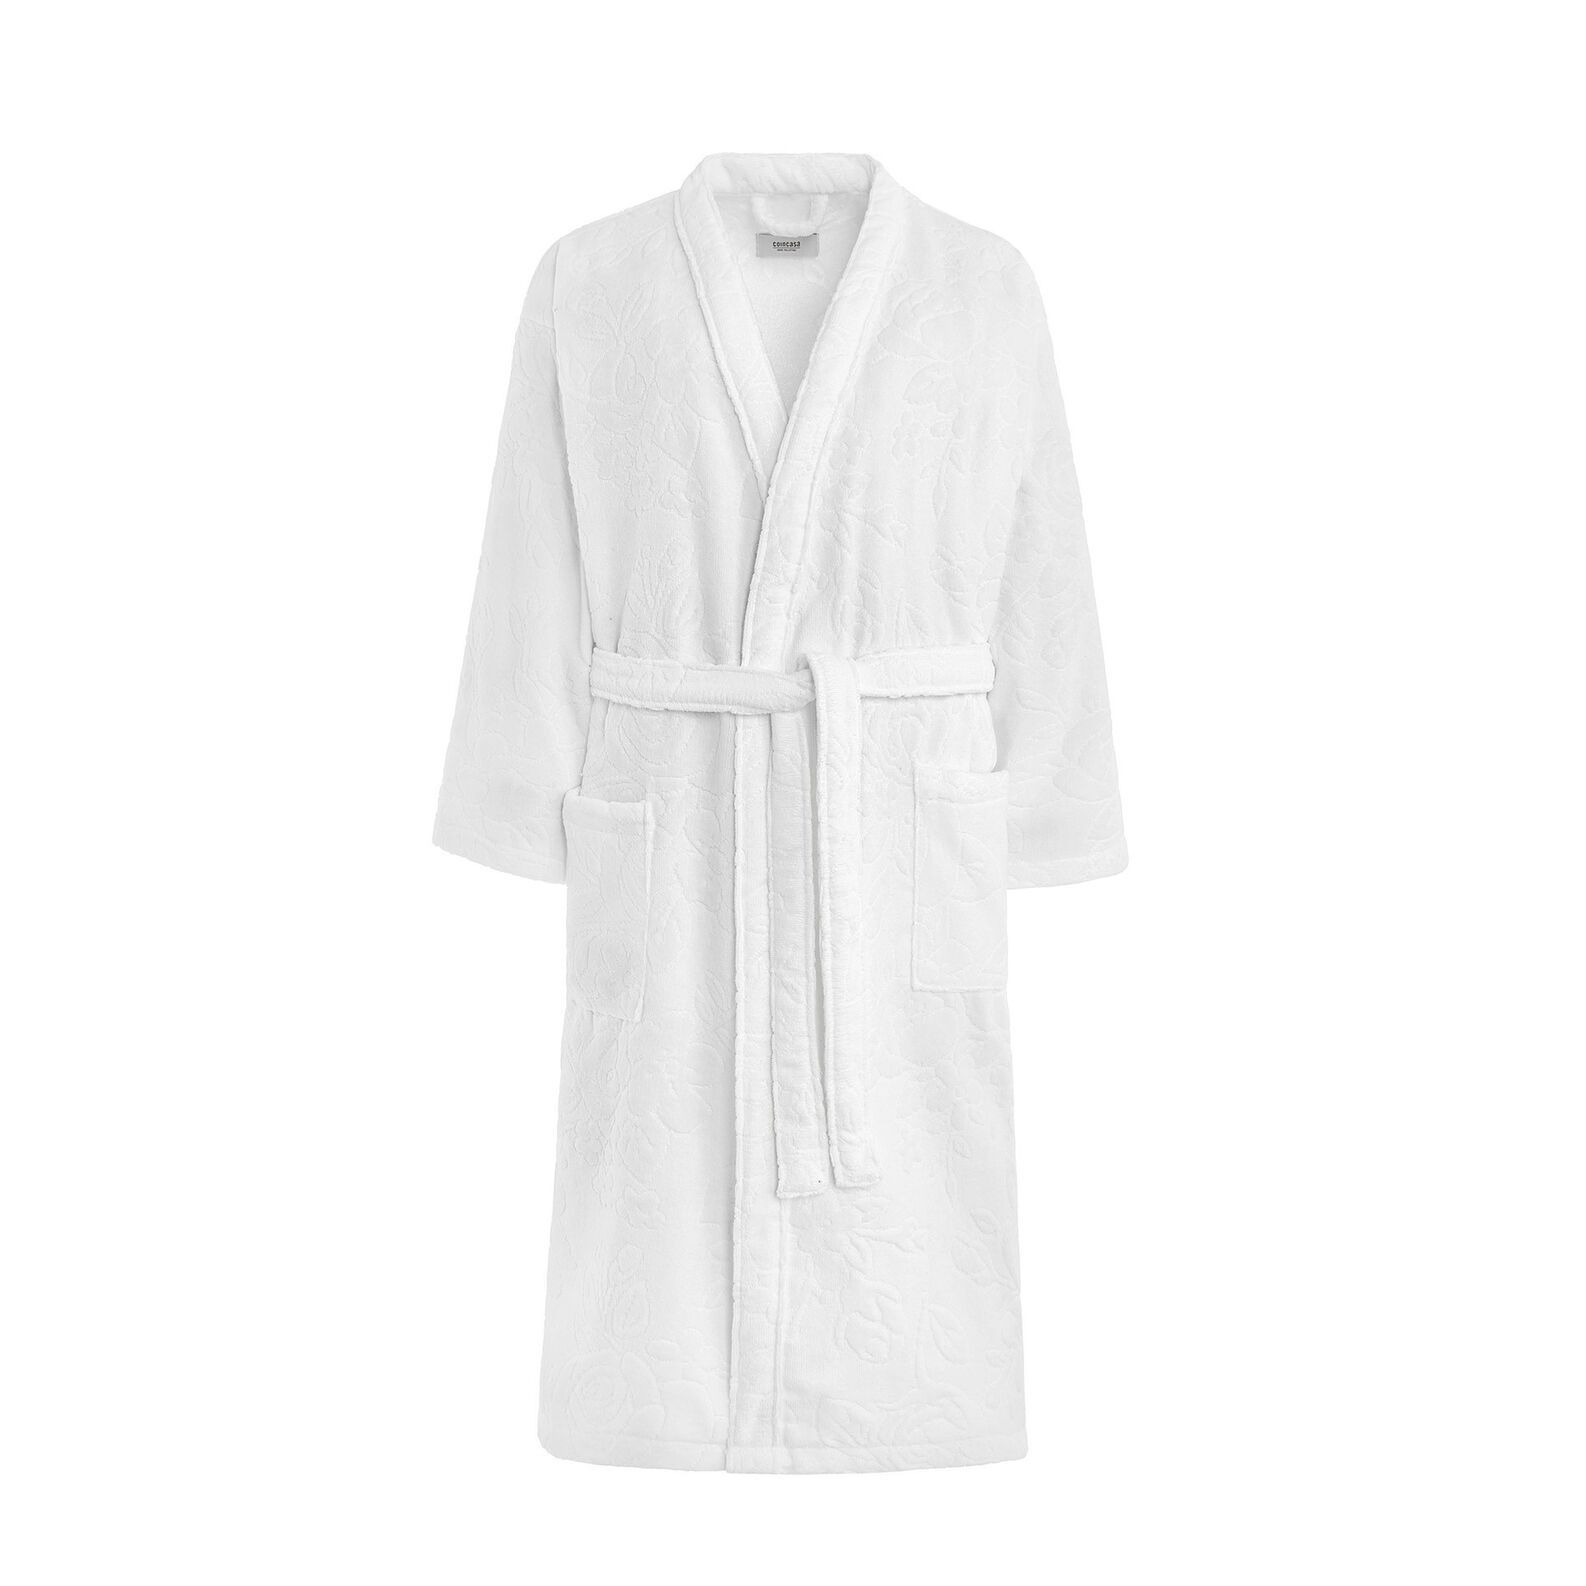 100% cotton bathrobe with floral design